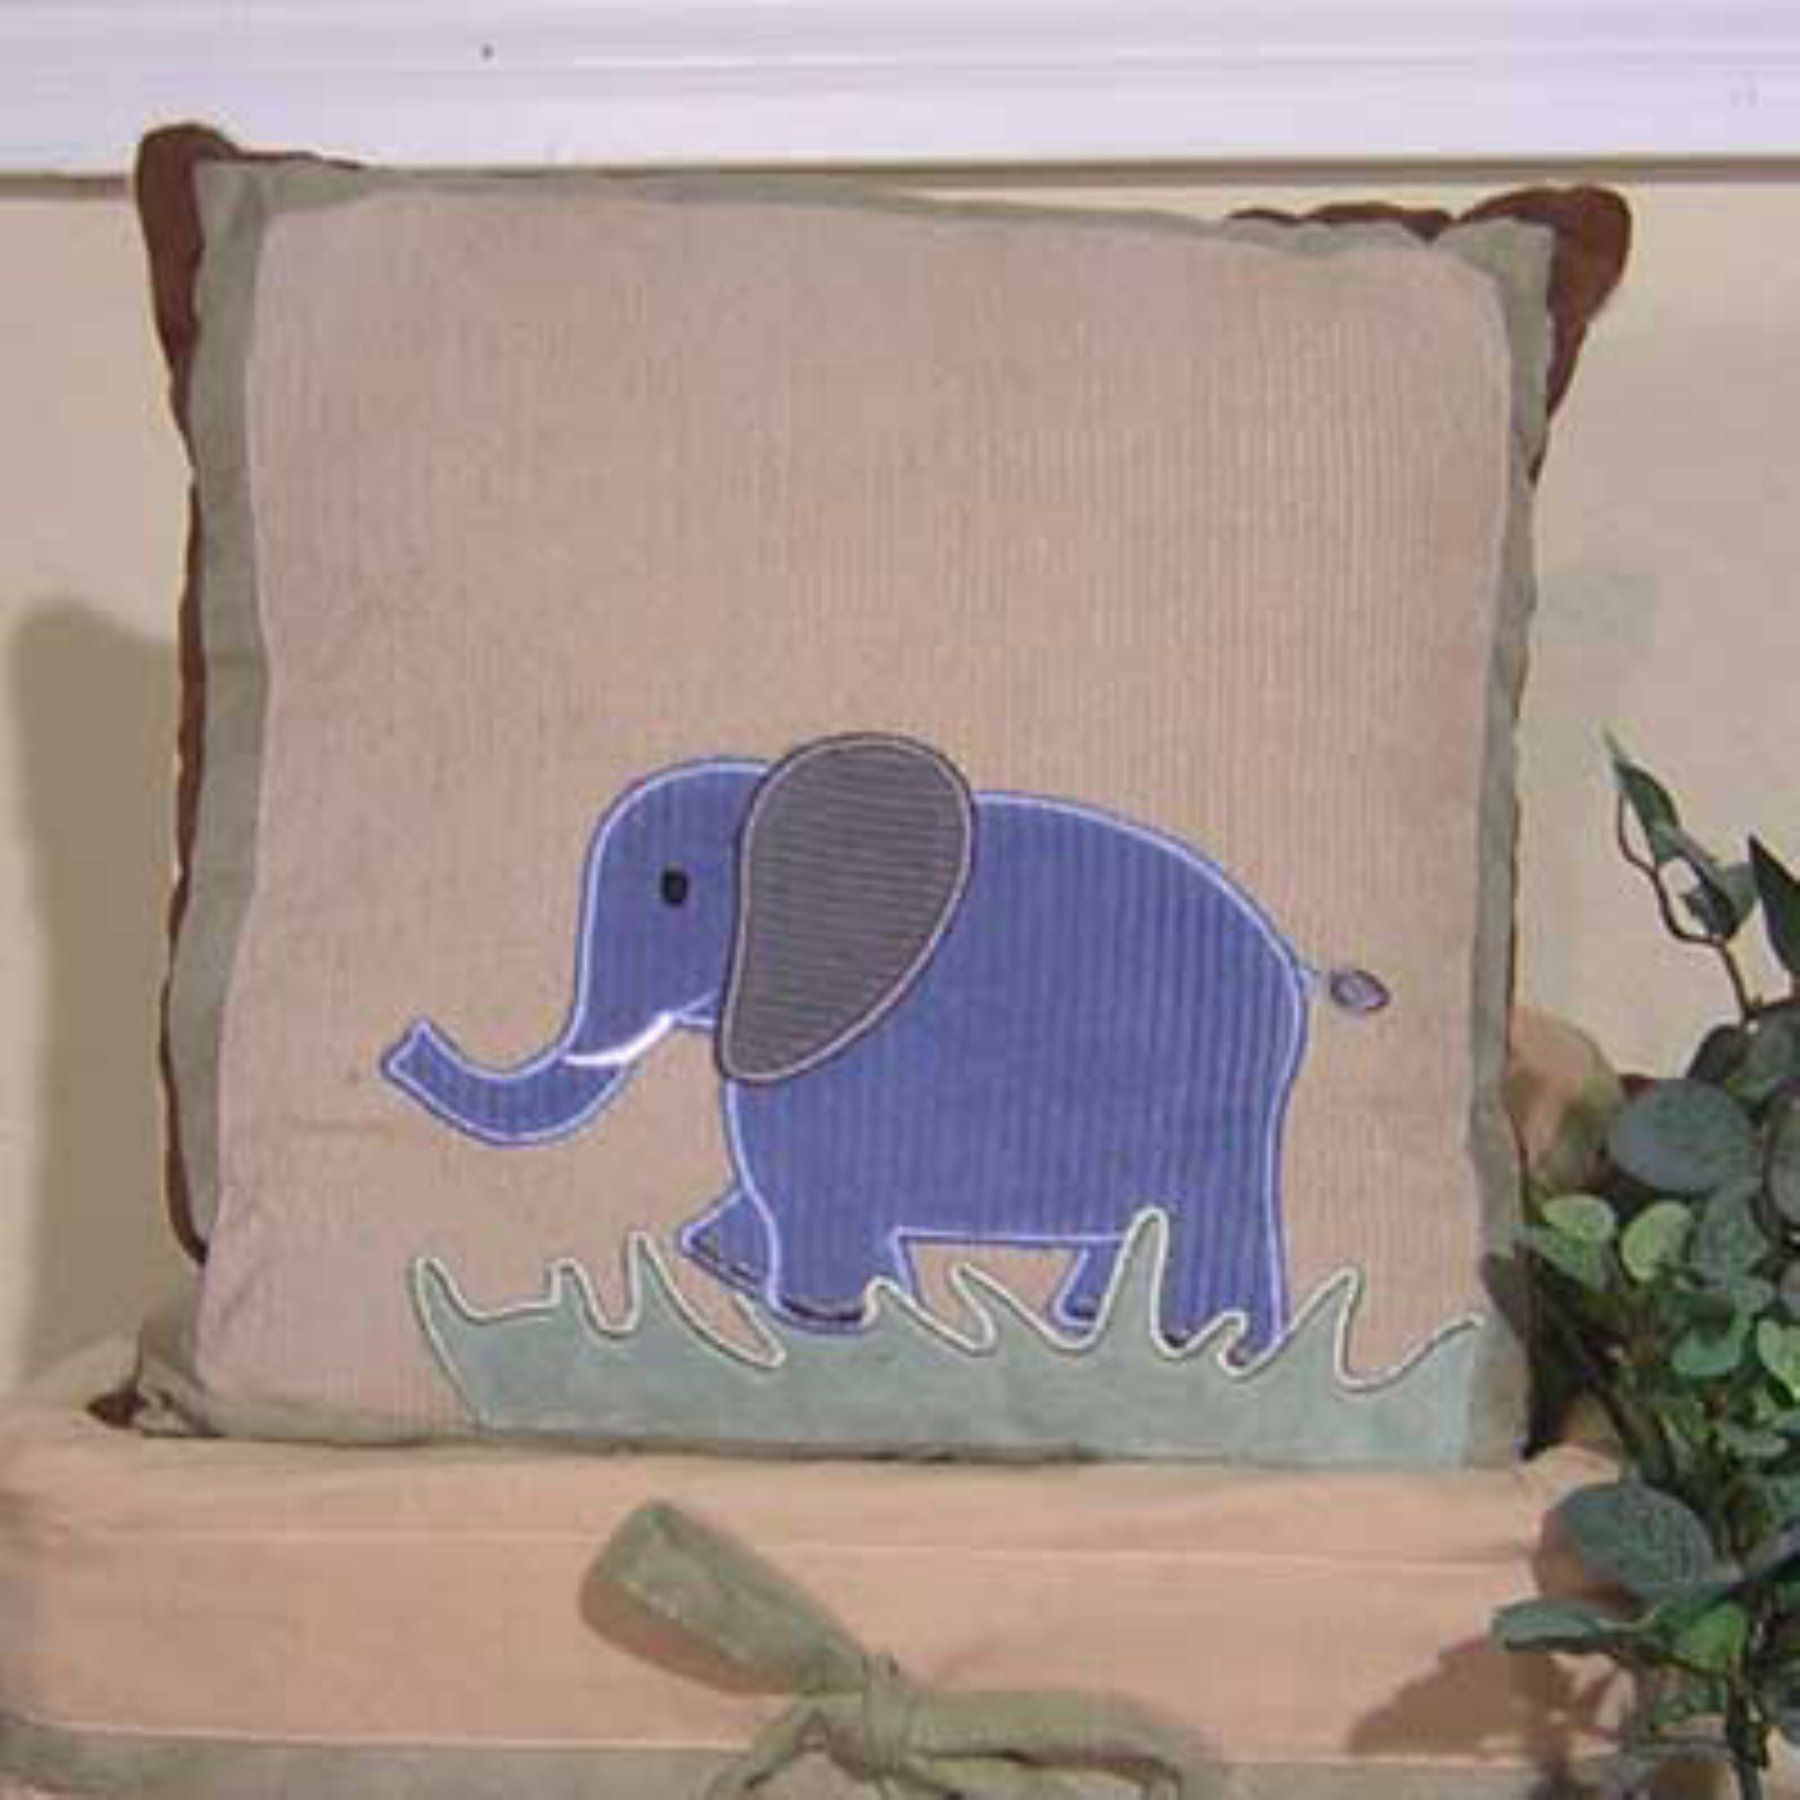 brandee danielle on safari elephant decorative pillow  bos  - brandee danielle on safari elephant decorative pillow  bos